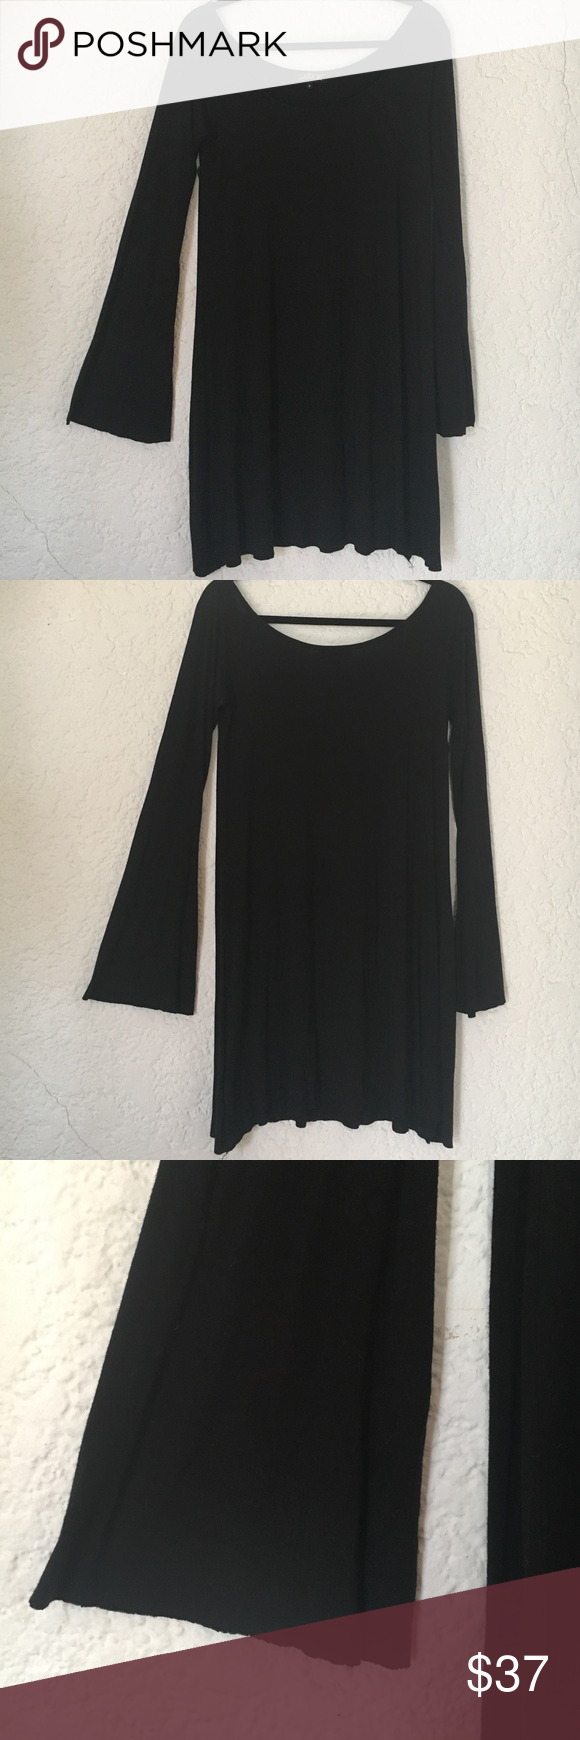 LaROK cotton jersey long bell sleeved dress Super soft jersey cotton dress with bell sleeves. Drapes really nicely. Can wear with tights and boots to dress it down or heels if you want to dress it up! LaRok Dresses Long Sleeve